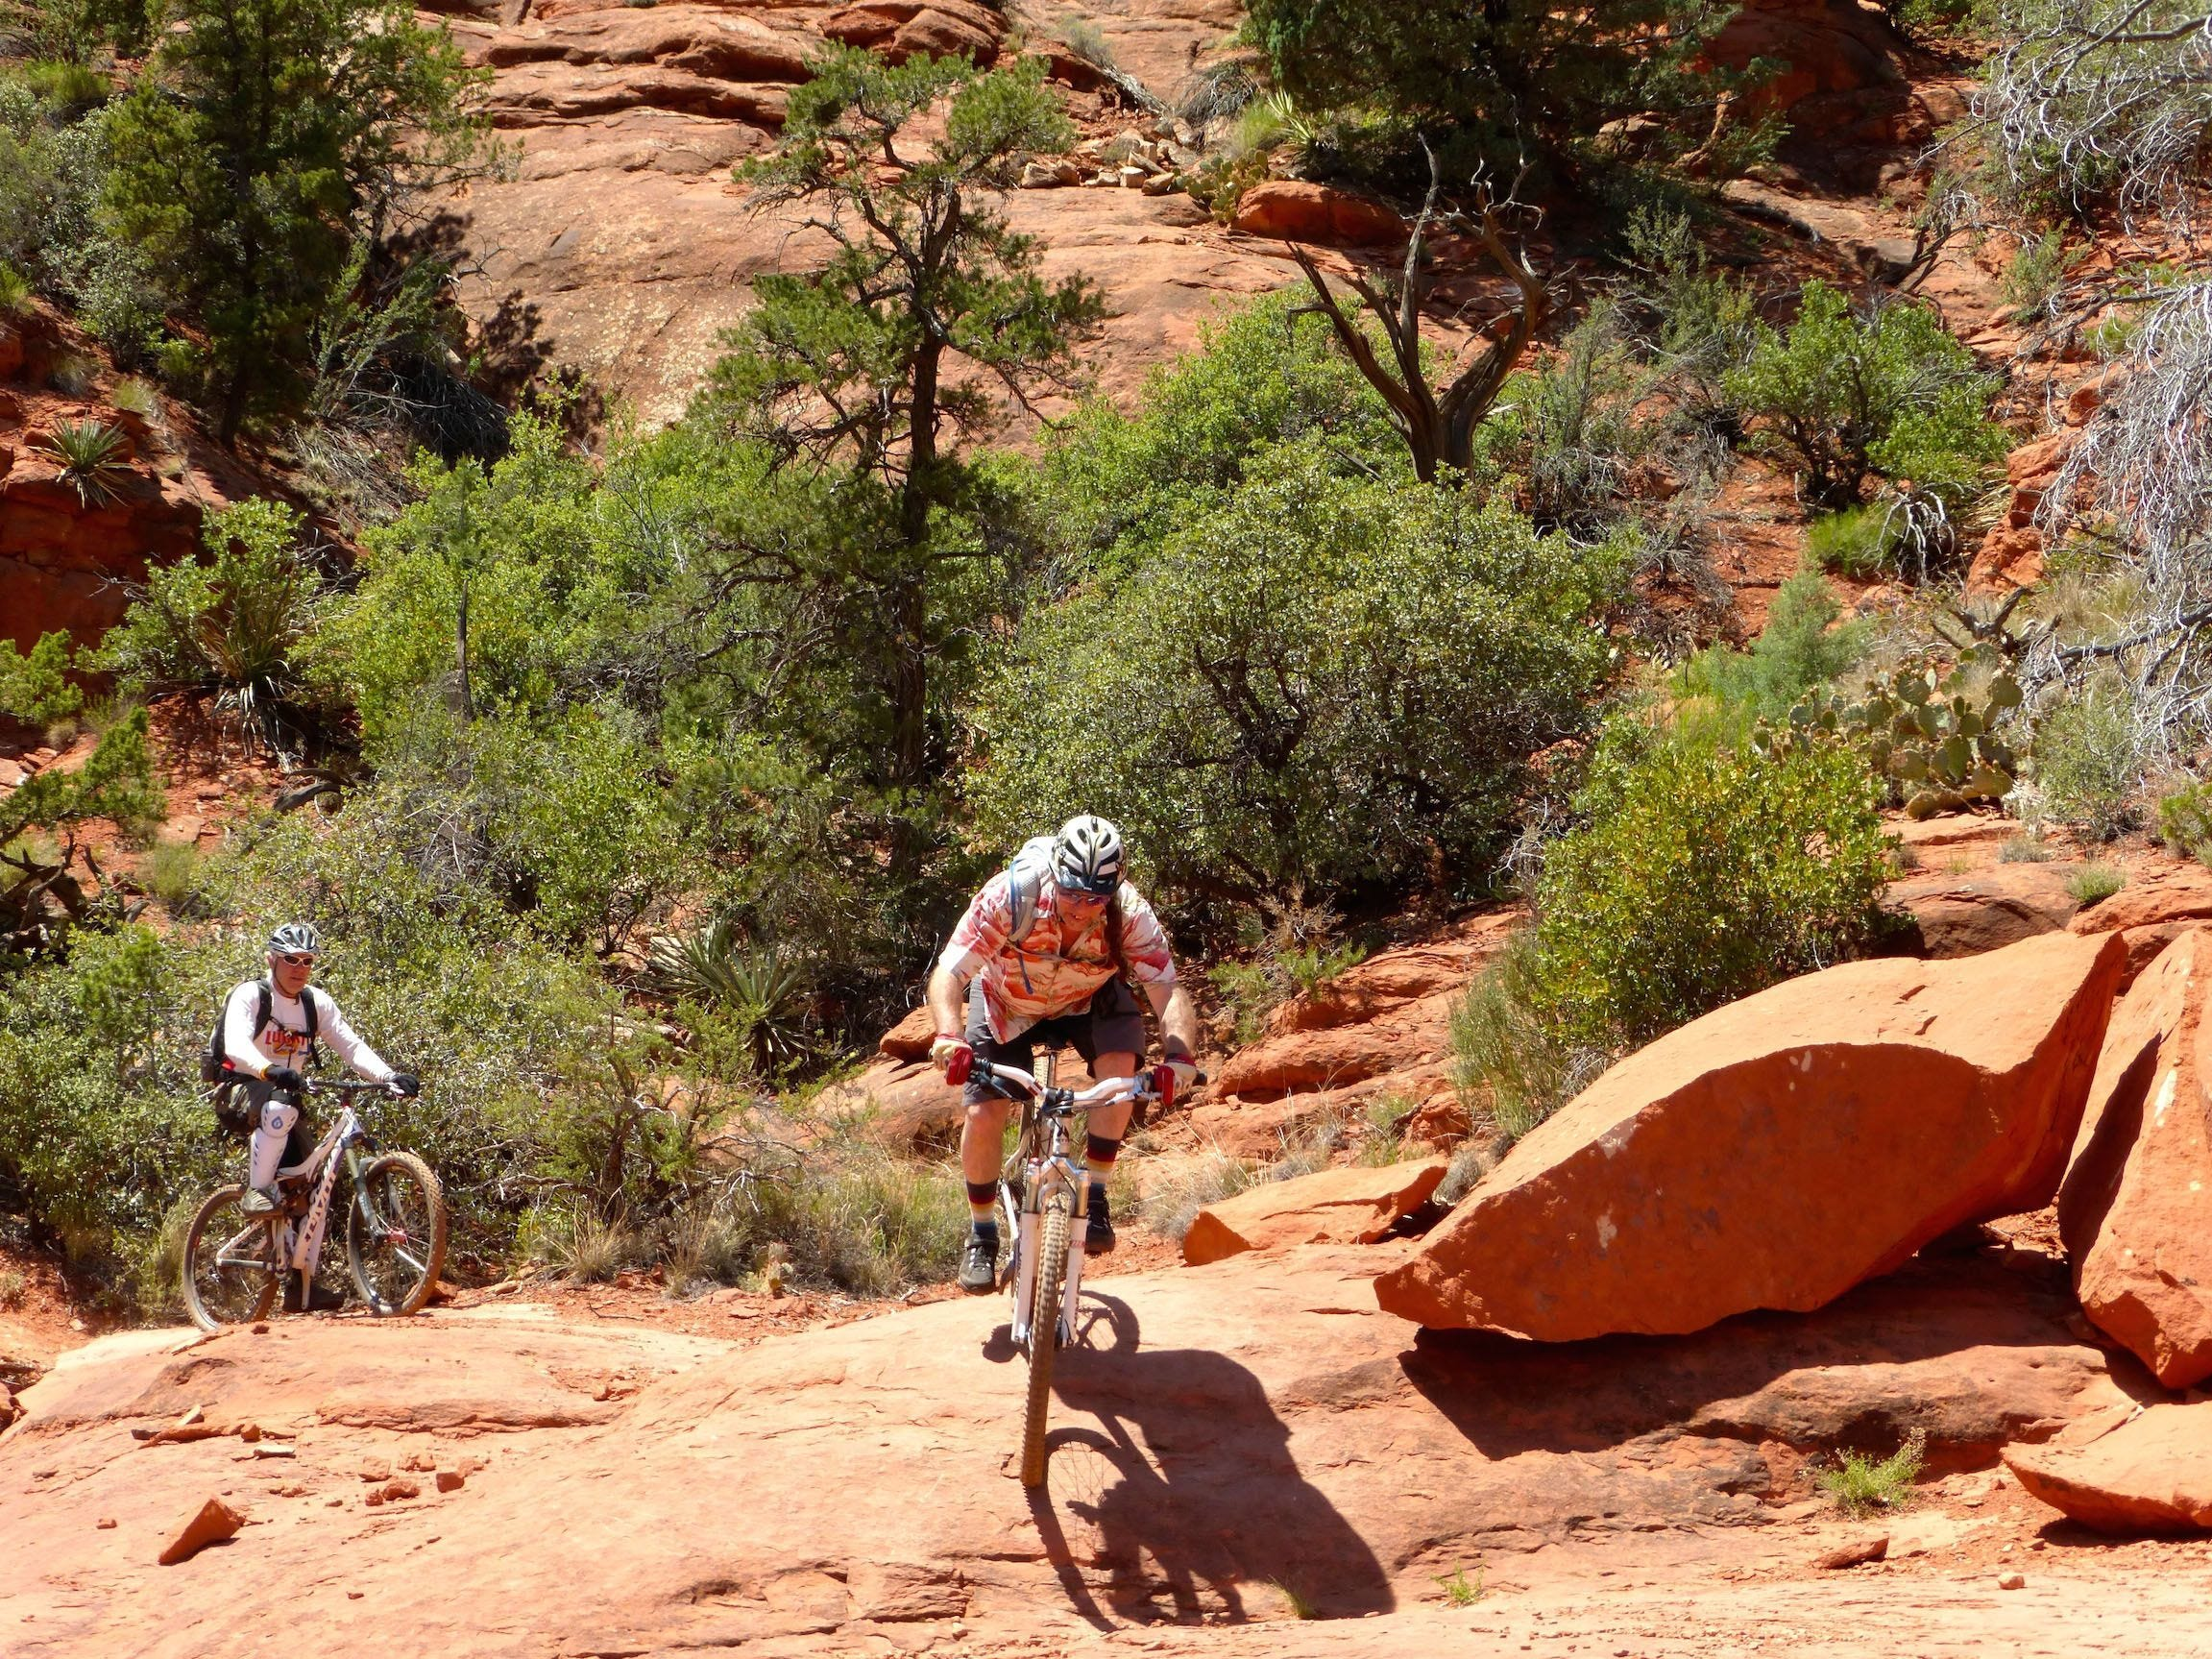 The system of Hog trails in Sedona are popular with hikers and experienced mountain bikers.  Roger Naylor The system of Hog trails in Sedona are popular with hikers and experienced mountain bikers.